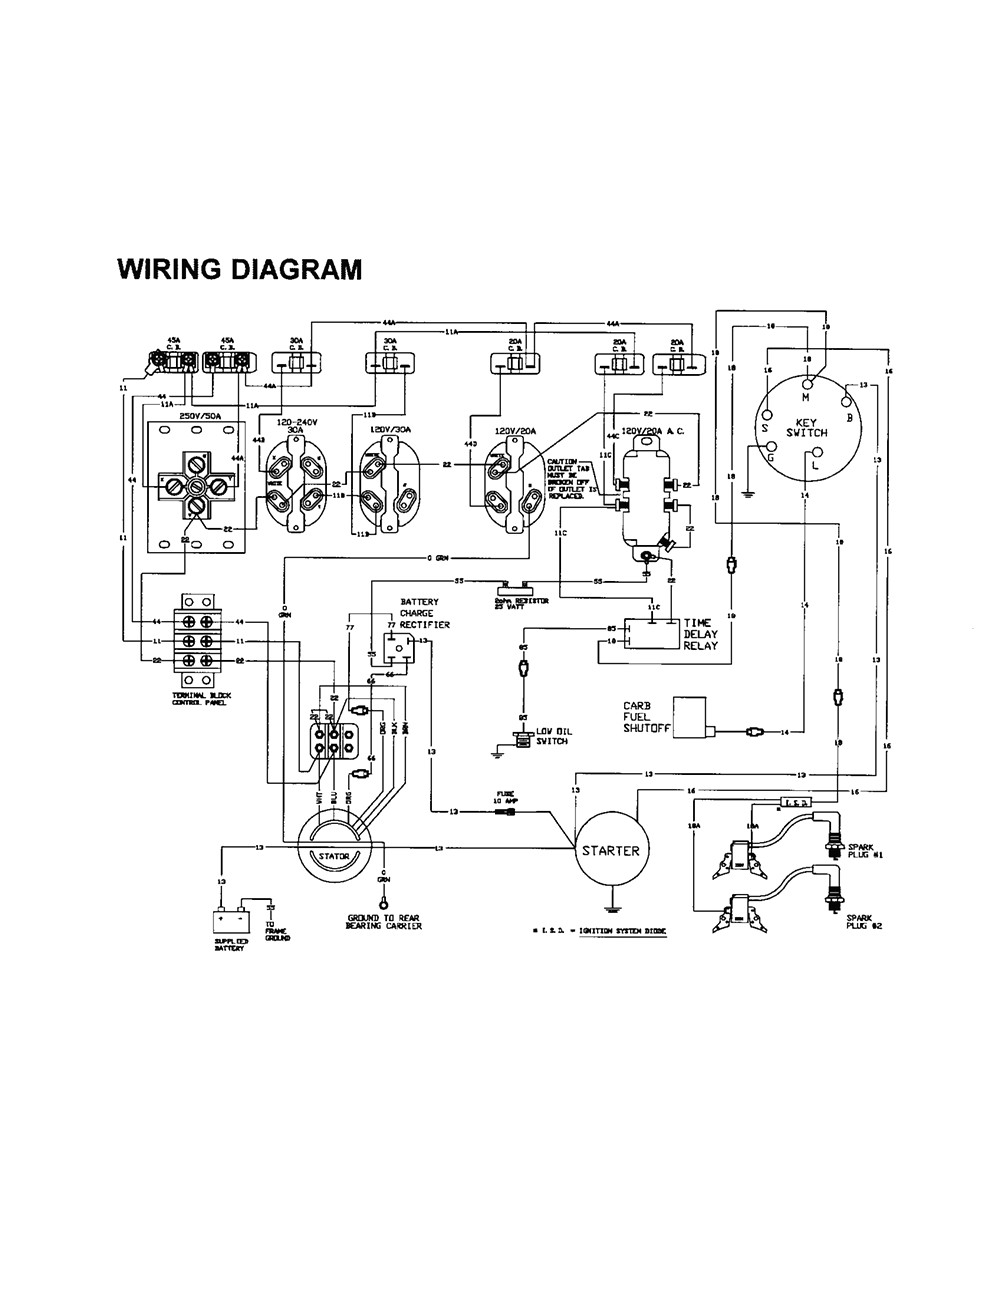 Wiring Diagram Generac Generator Gp7000e Trusted Diagrams Portable Automatic Transfer Switch Generators Schematic Electrical